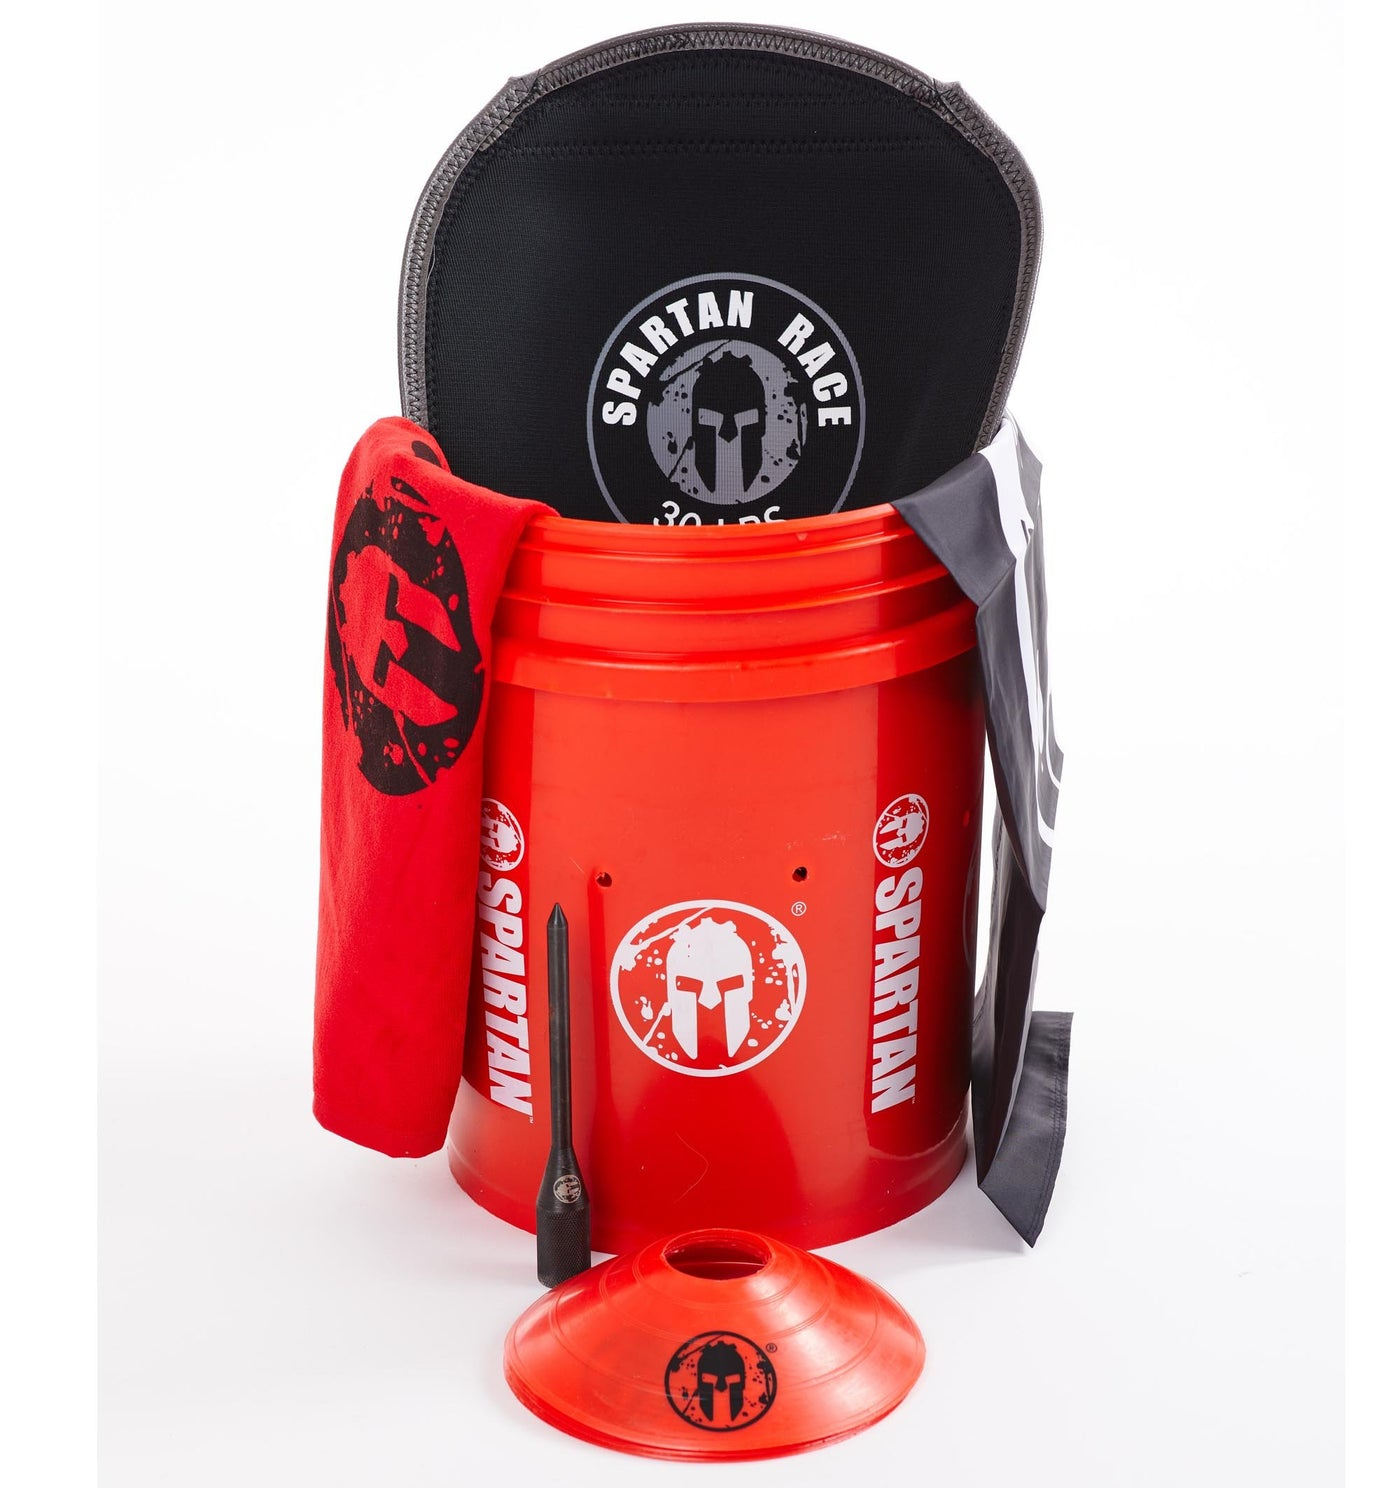 Spartan Race Shop SPARTAN In A Bucket Training Kit - Super Edition - Women's